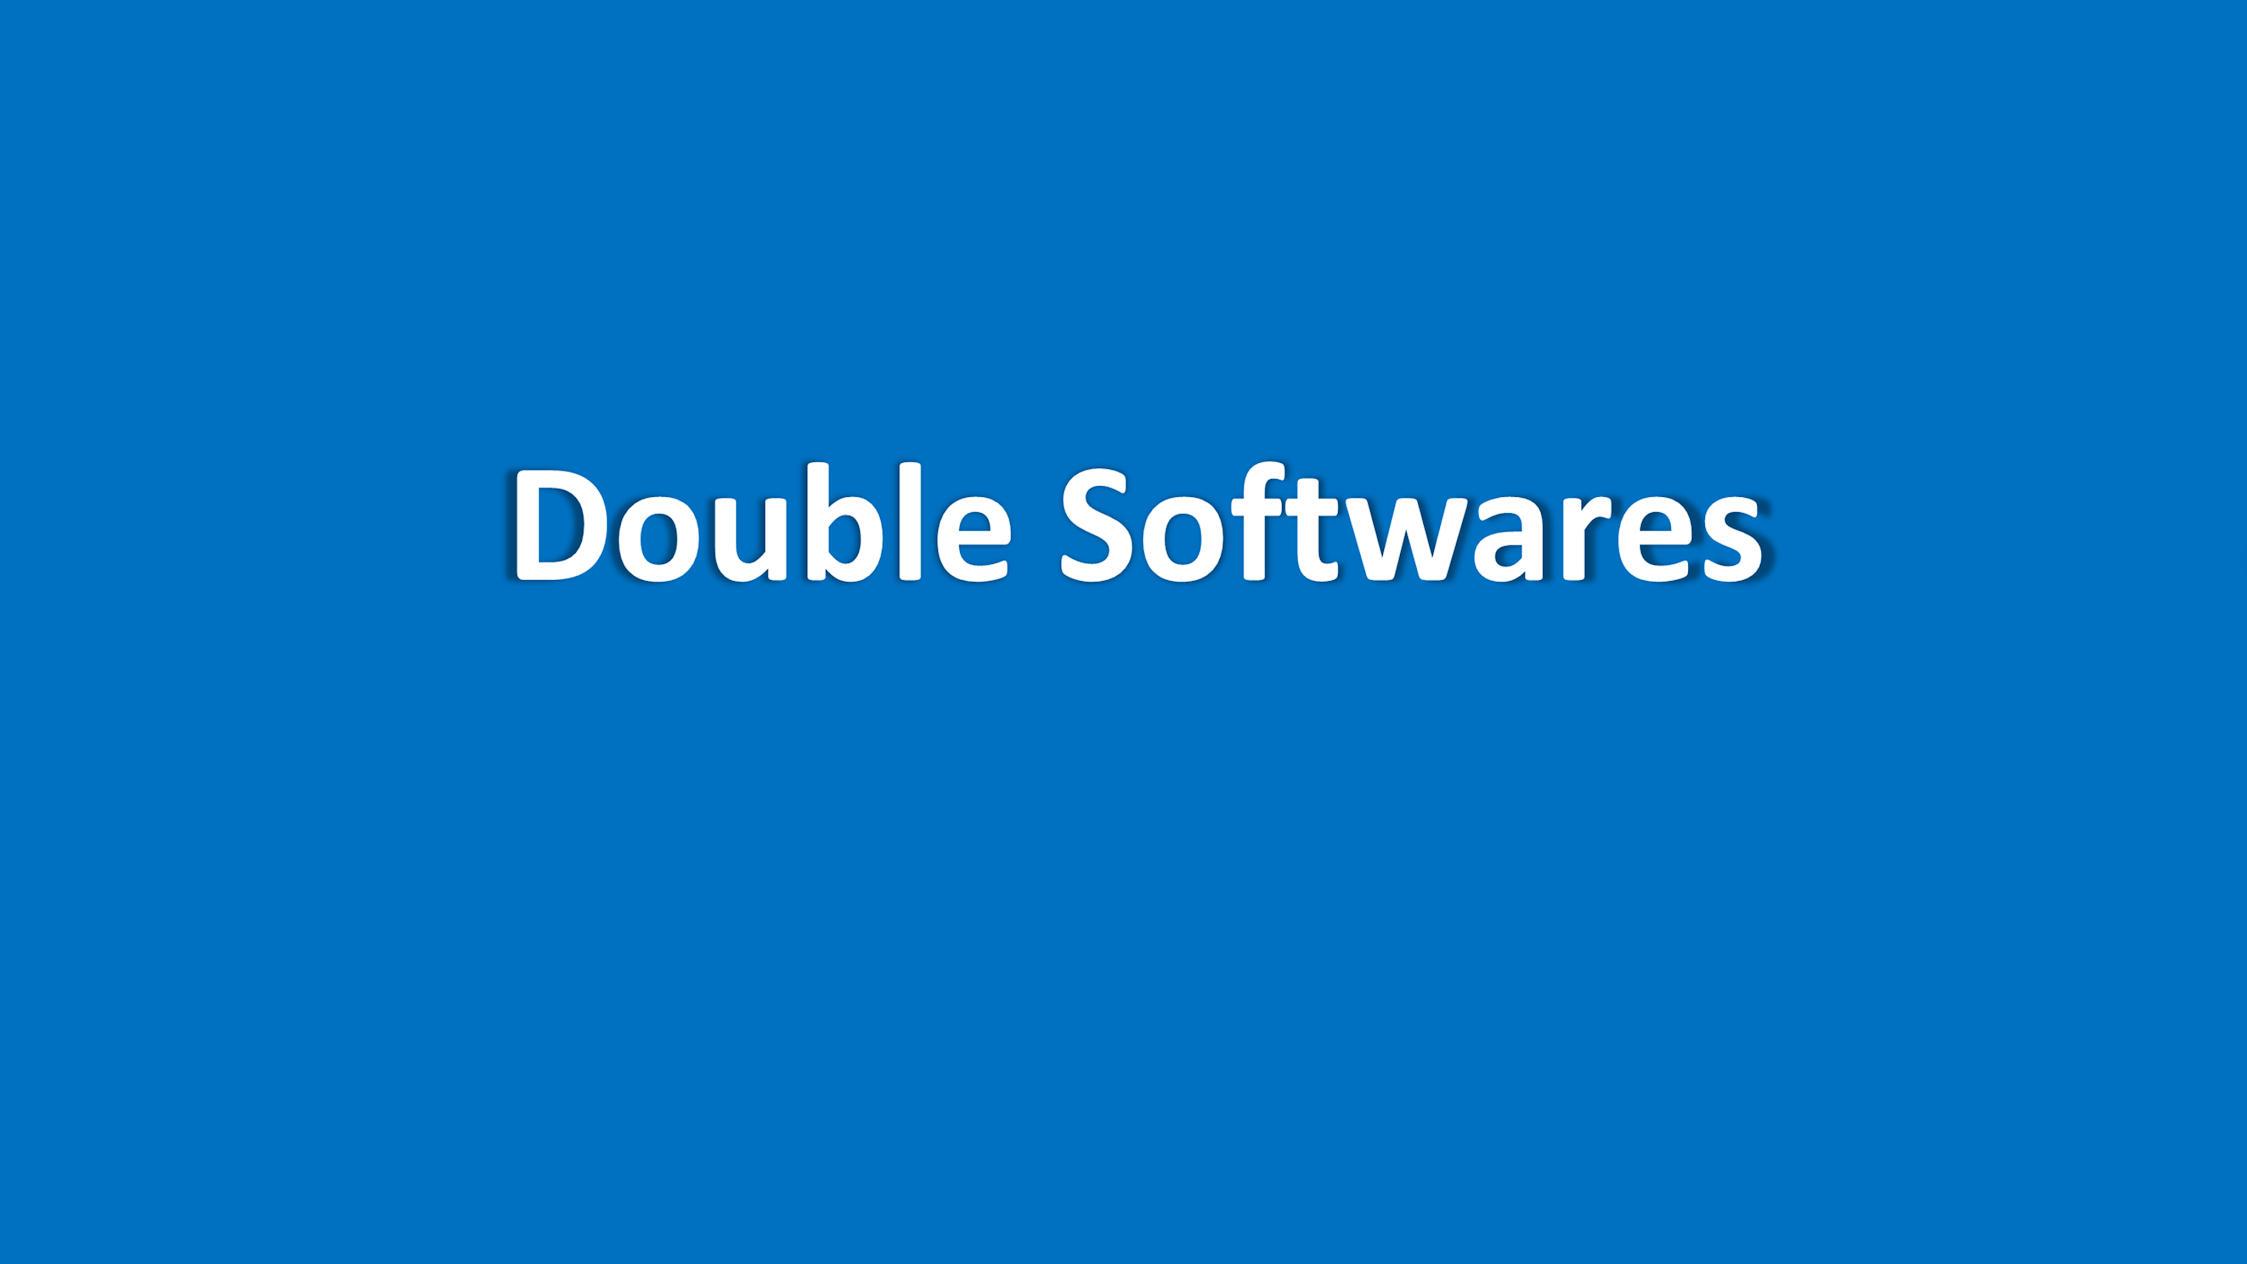 Double Softwares